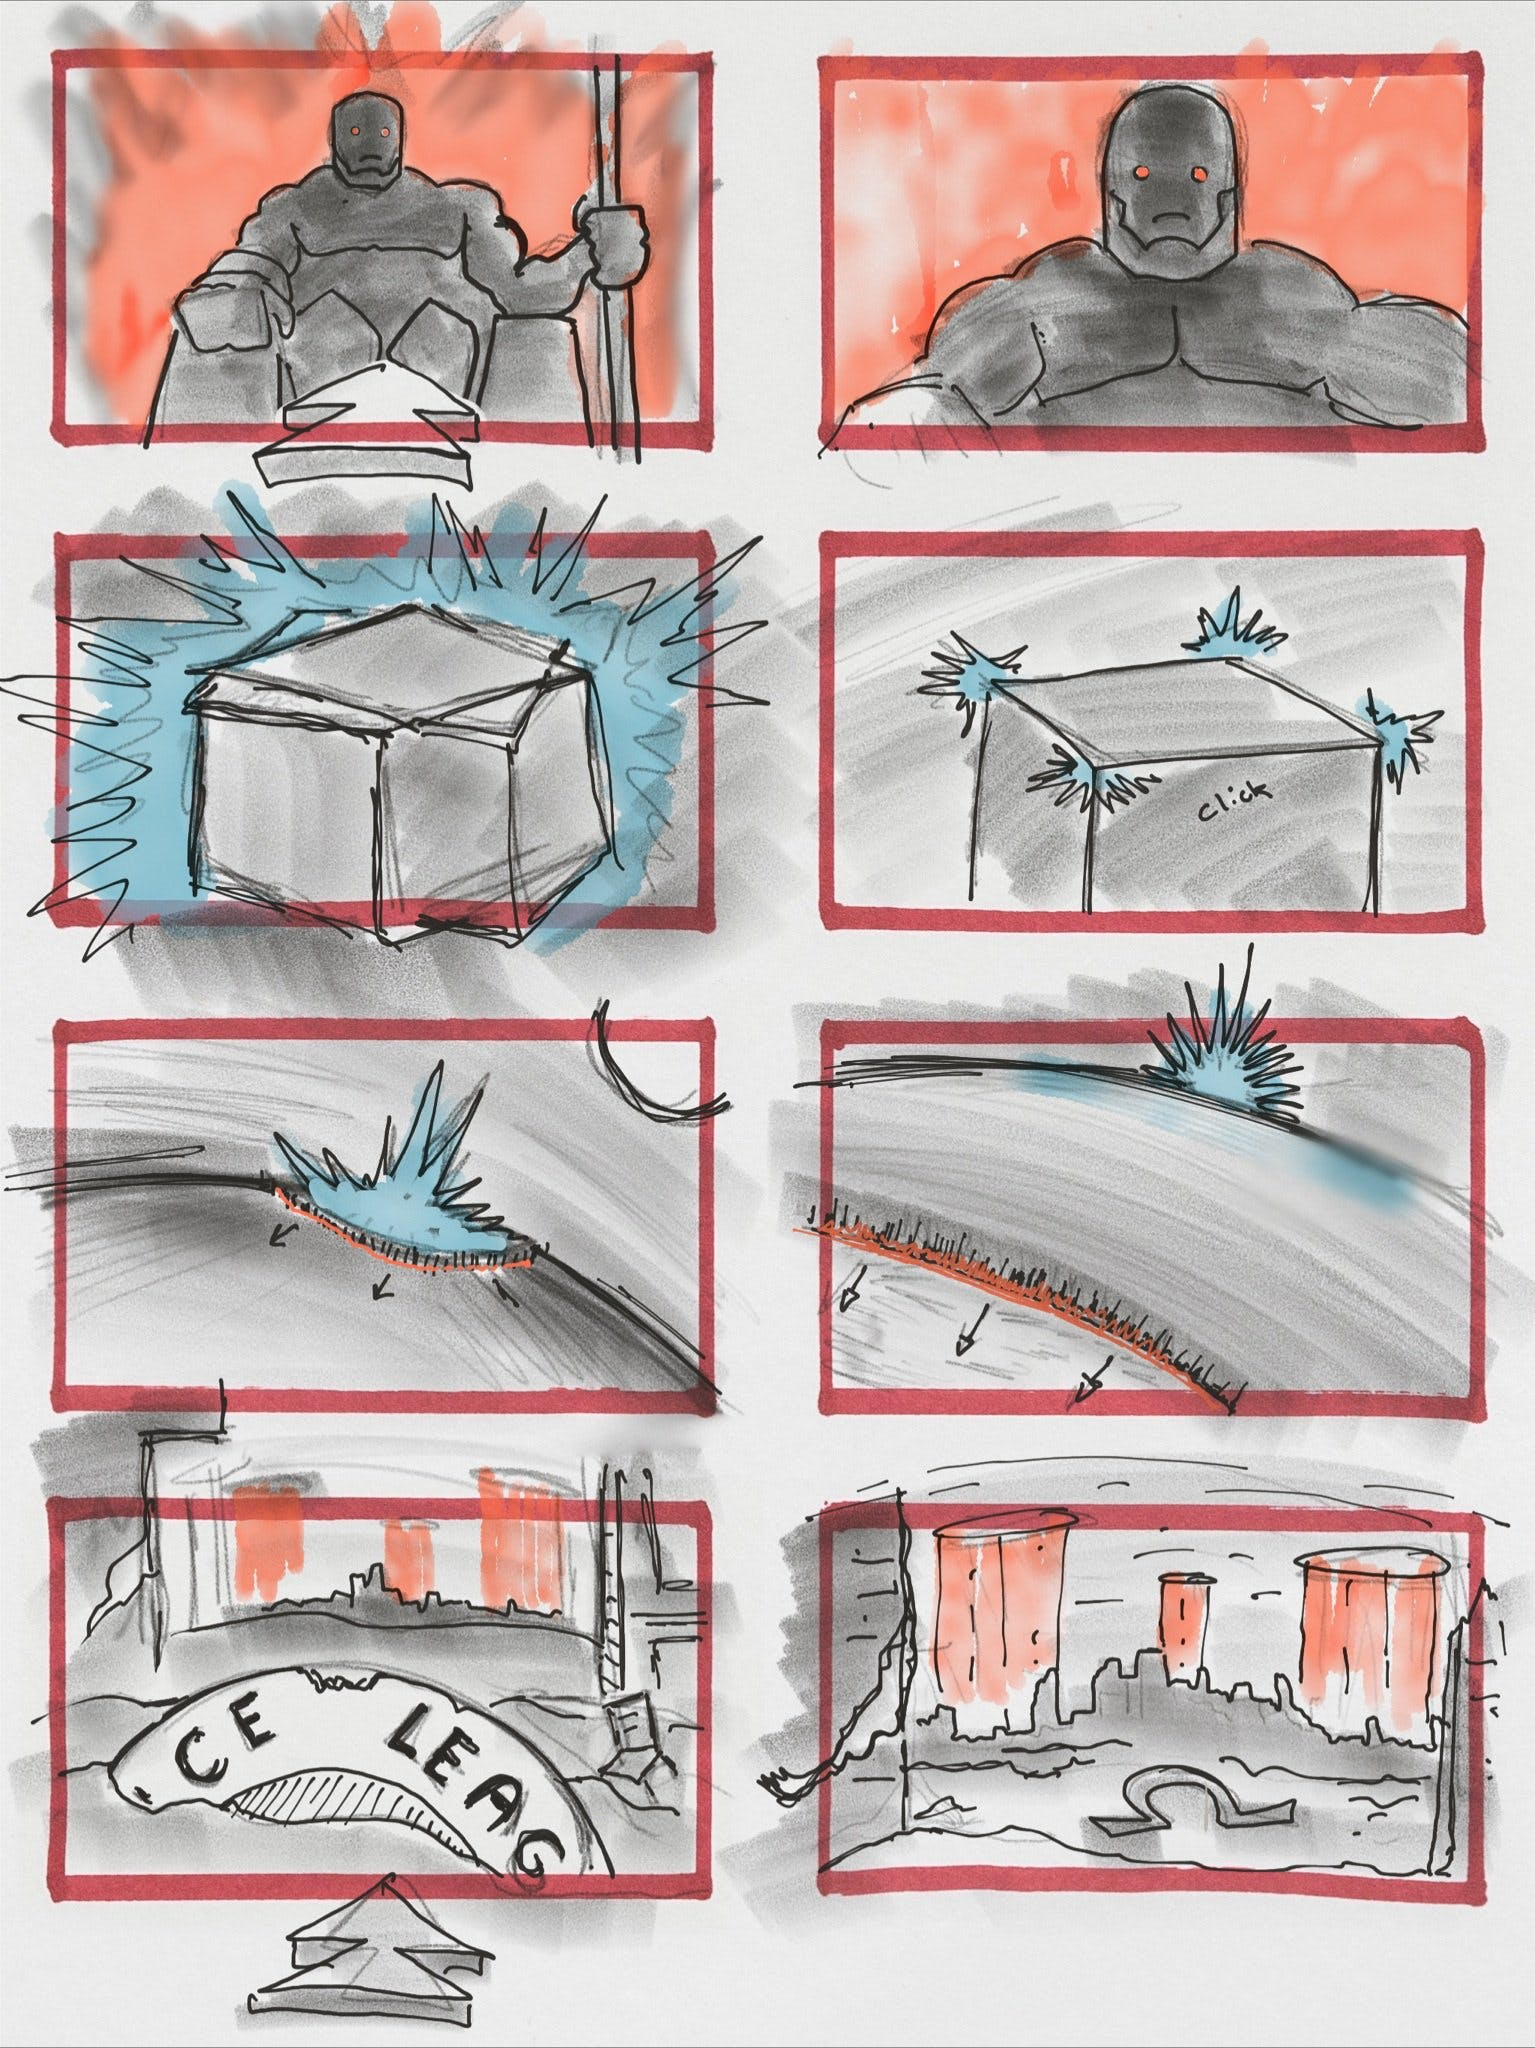 justice-league-zack-snyder-darkseid-knightmare-storyboard.jpg